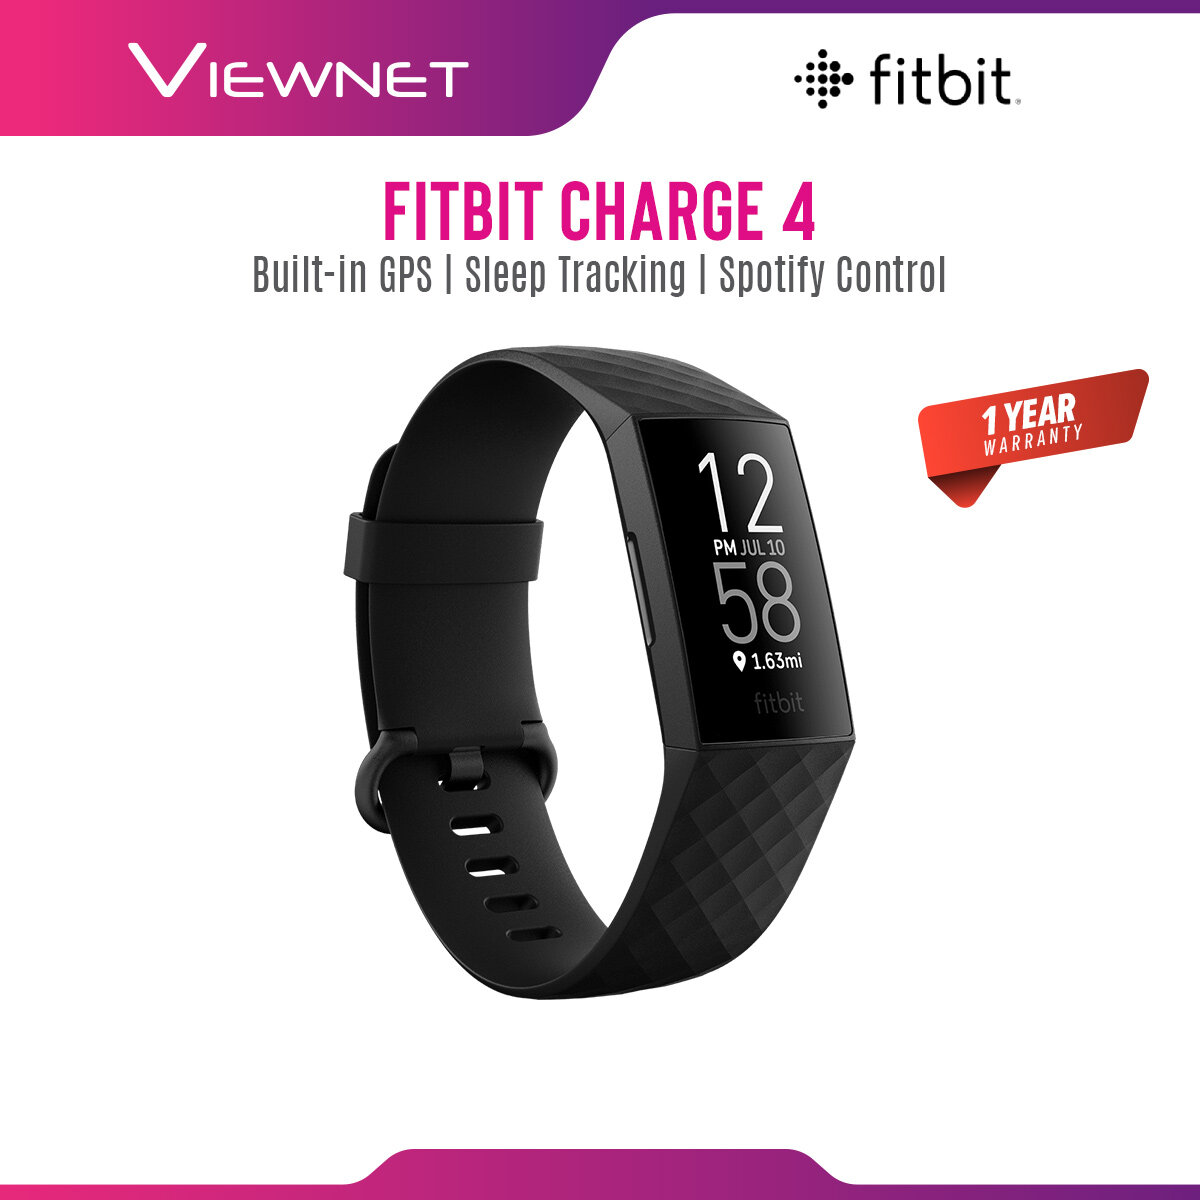 Fitbit Charge 4 Advanced Health & Fitness Tracker Smartwatch with Built-in GPS 24/7 Heart Rate Tracking Battery Up To 7 Days (Black)